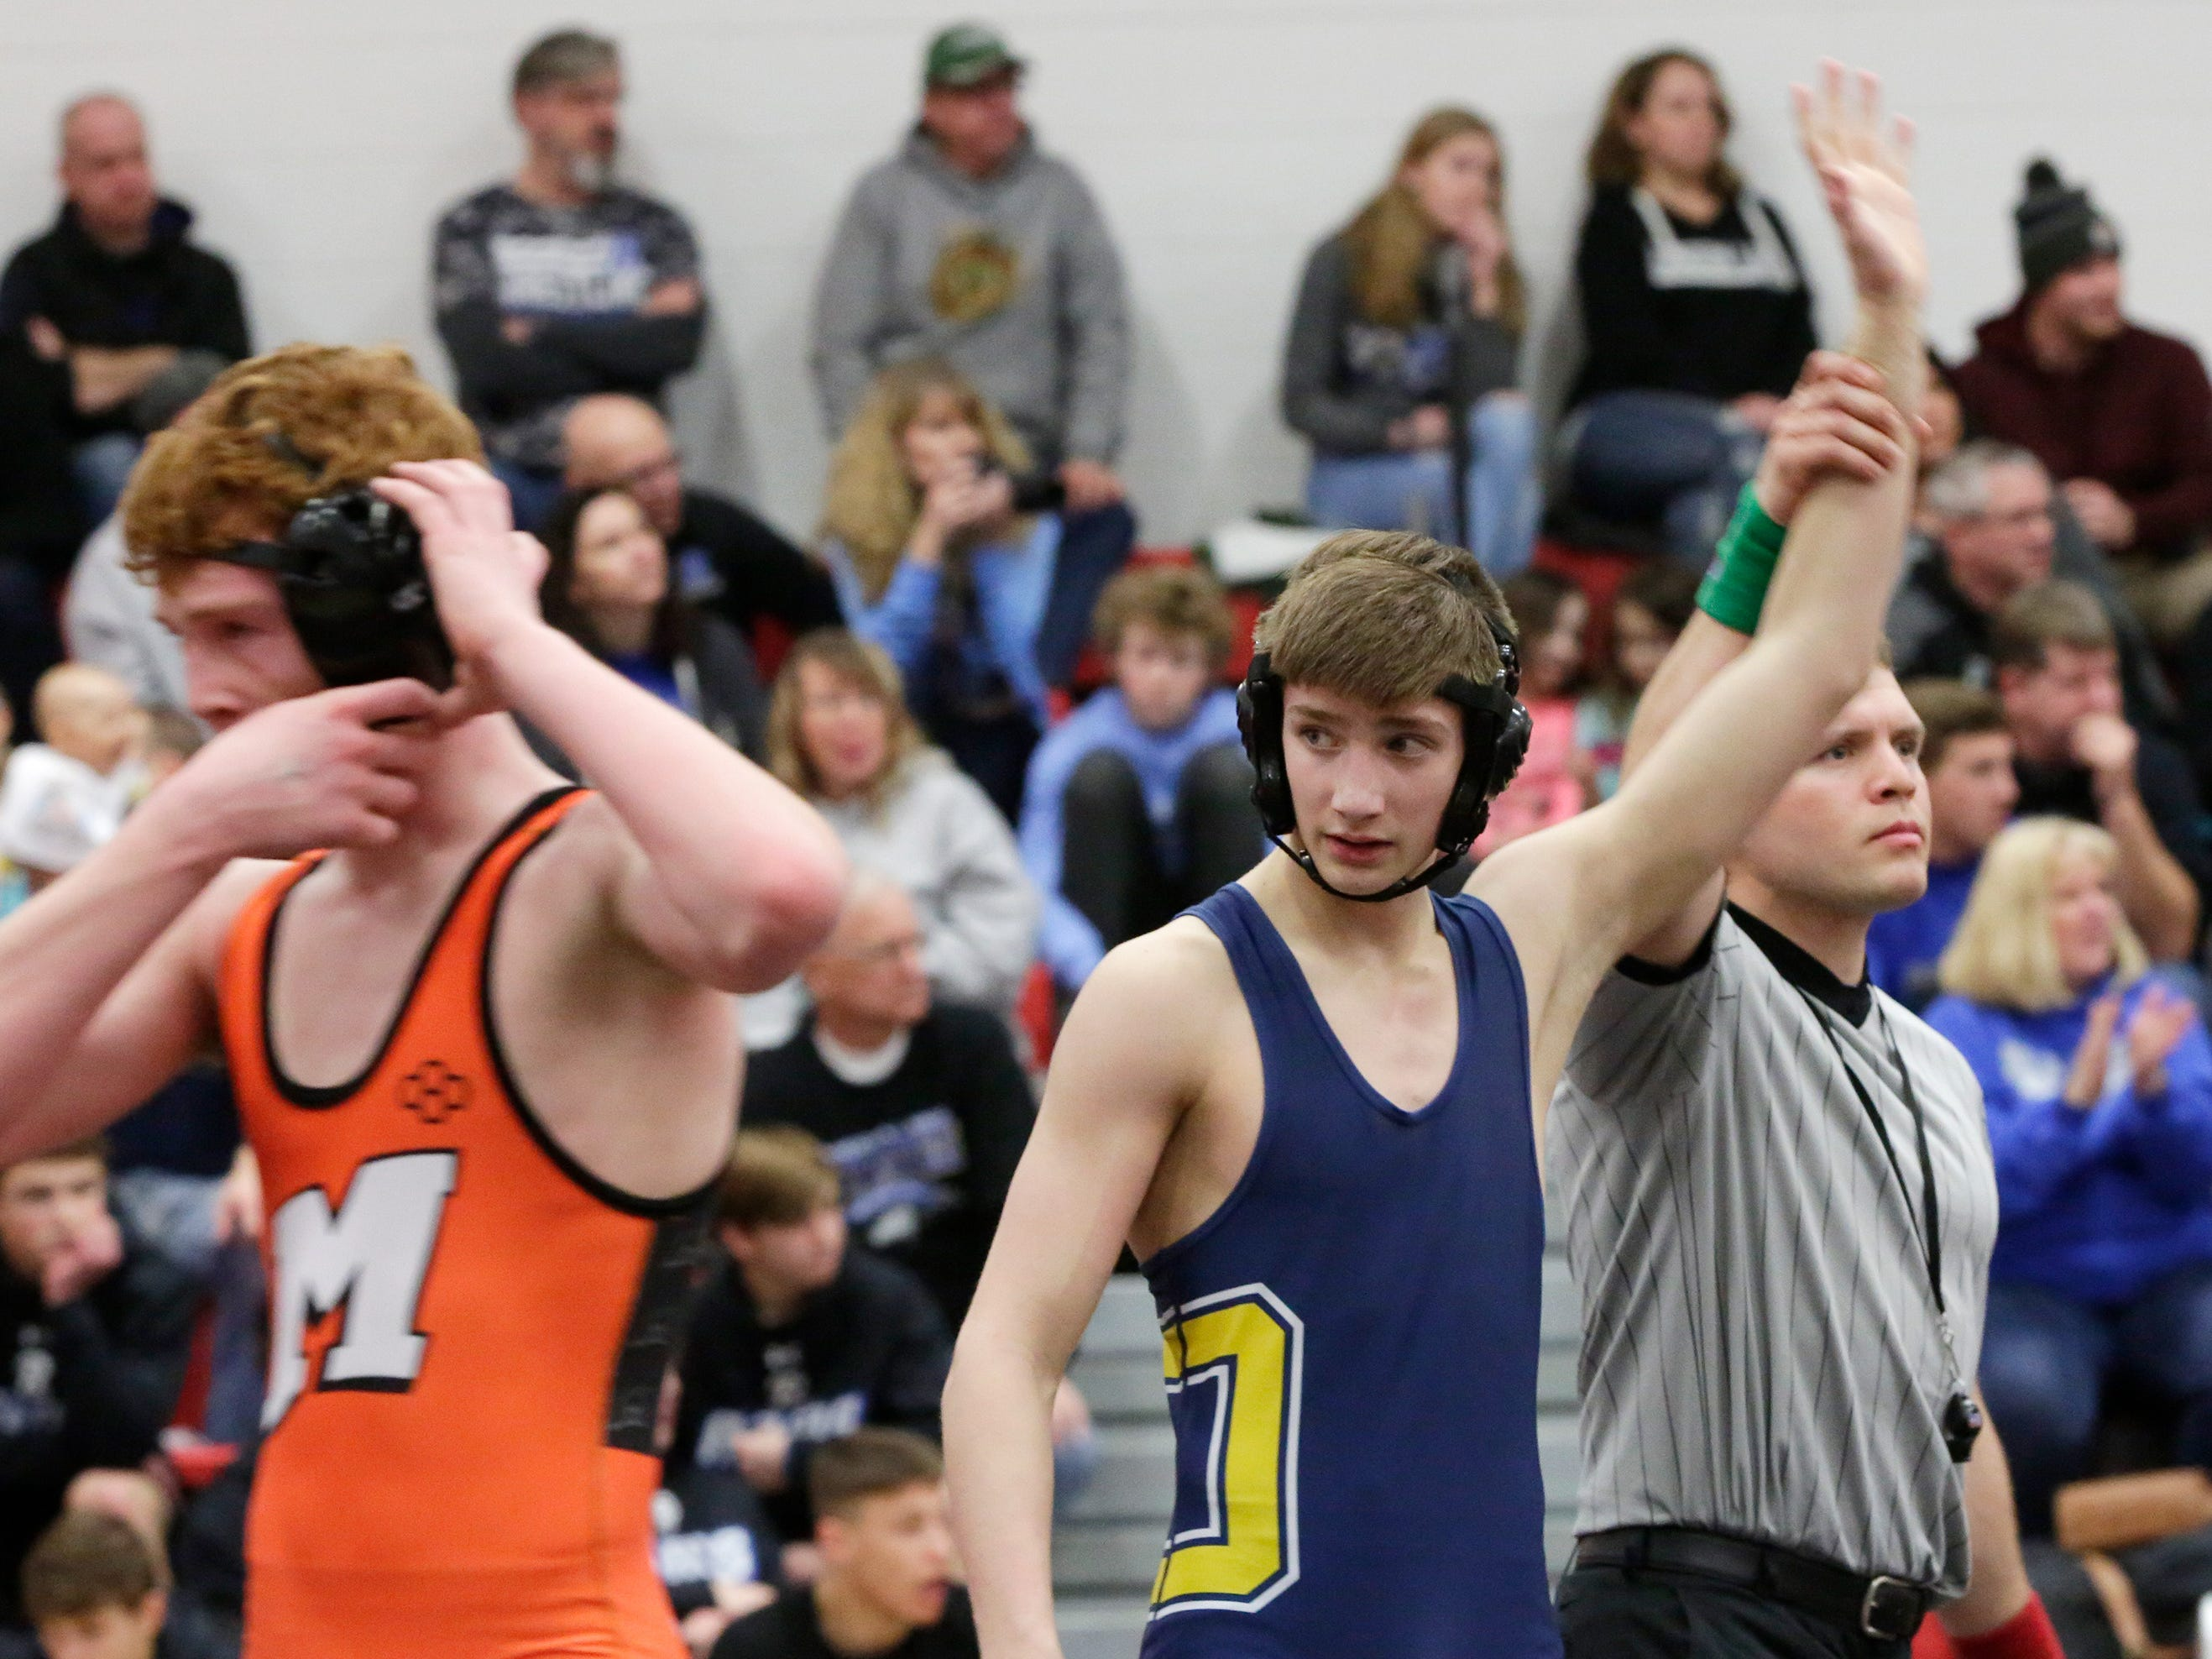 Ozaukee's Travis Simpson, right, looks to the crowd after winning a 132-pound match with Mishicot's Brant Cracraft, Saturday, February 2, 2019, in Oostburg, Wis.